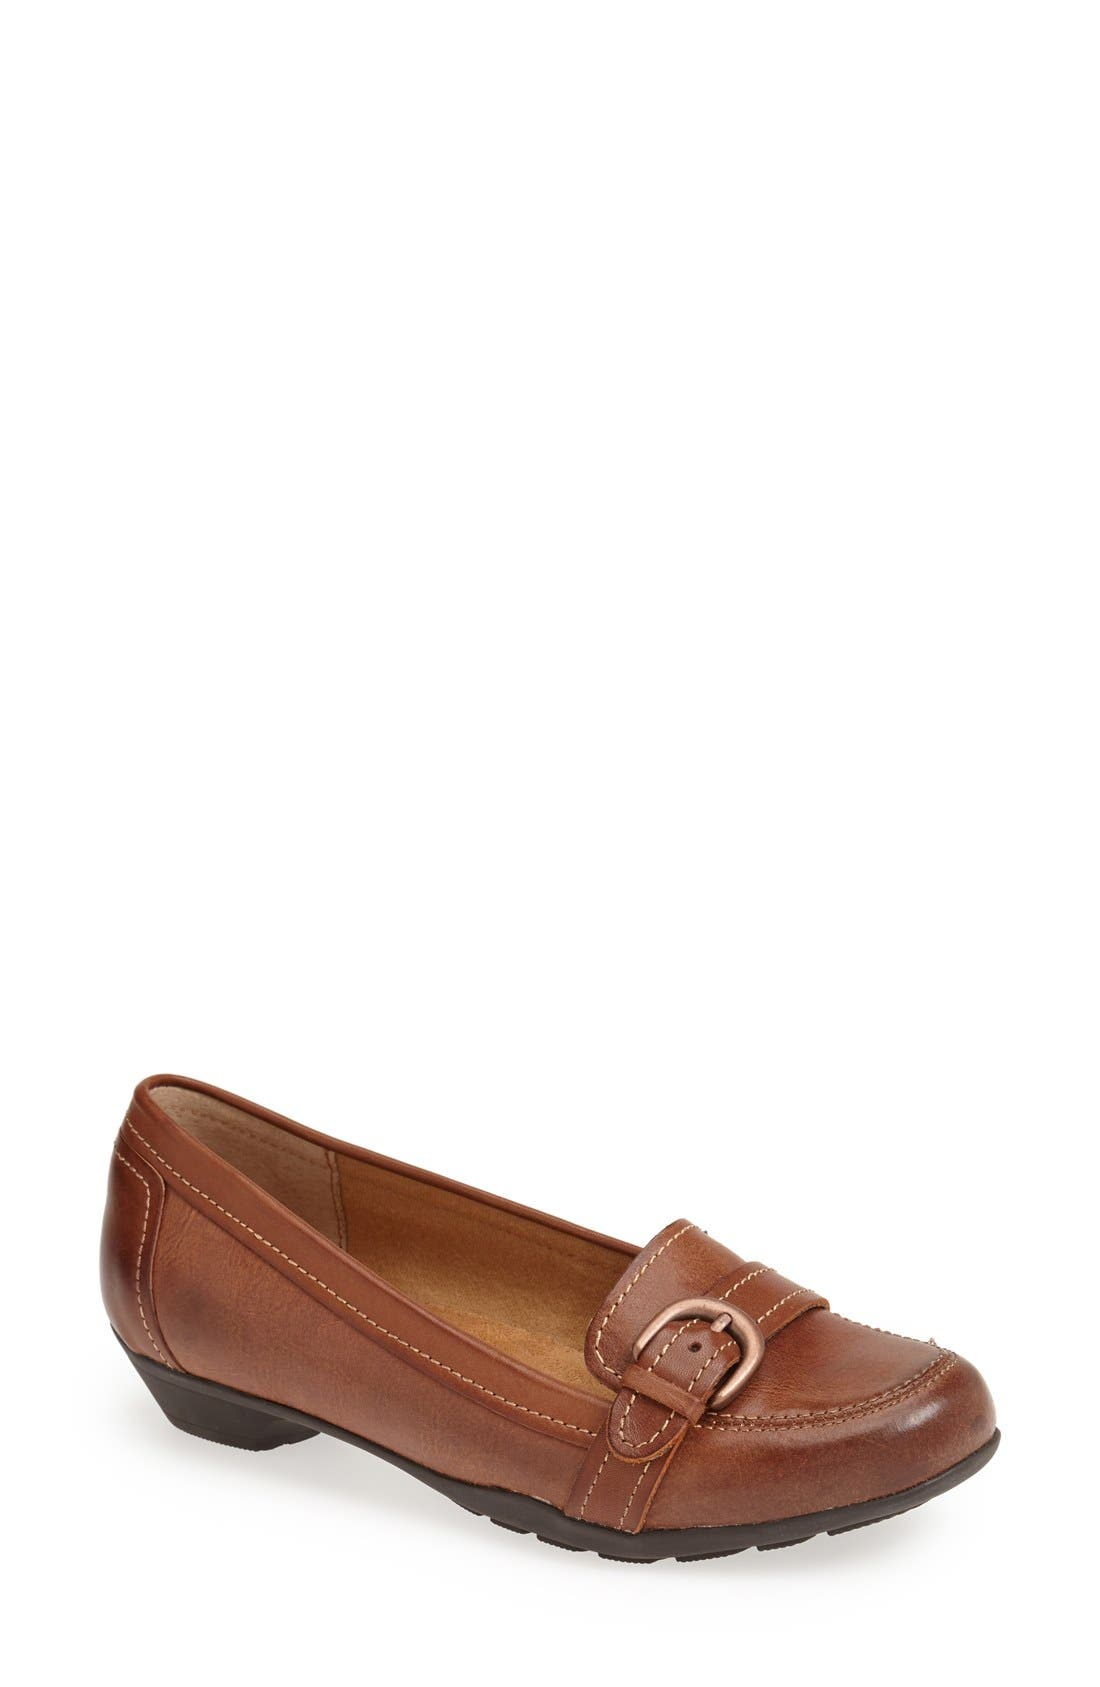 Alternate Image 1 Selected - Softspots 'Parson' Leather Loafer (Women)